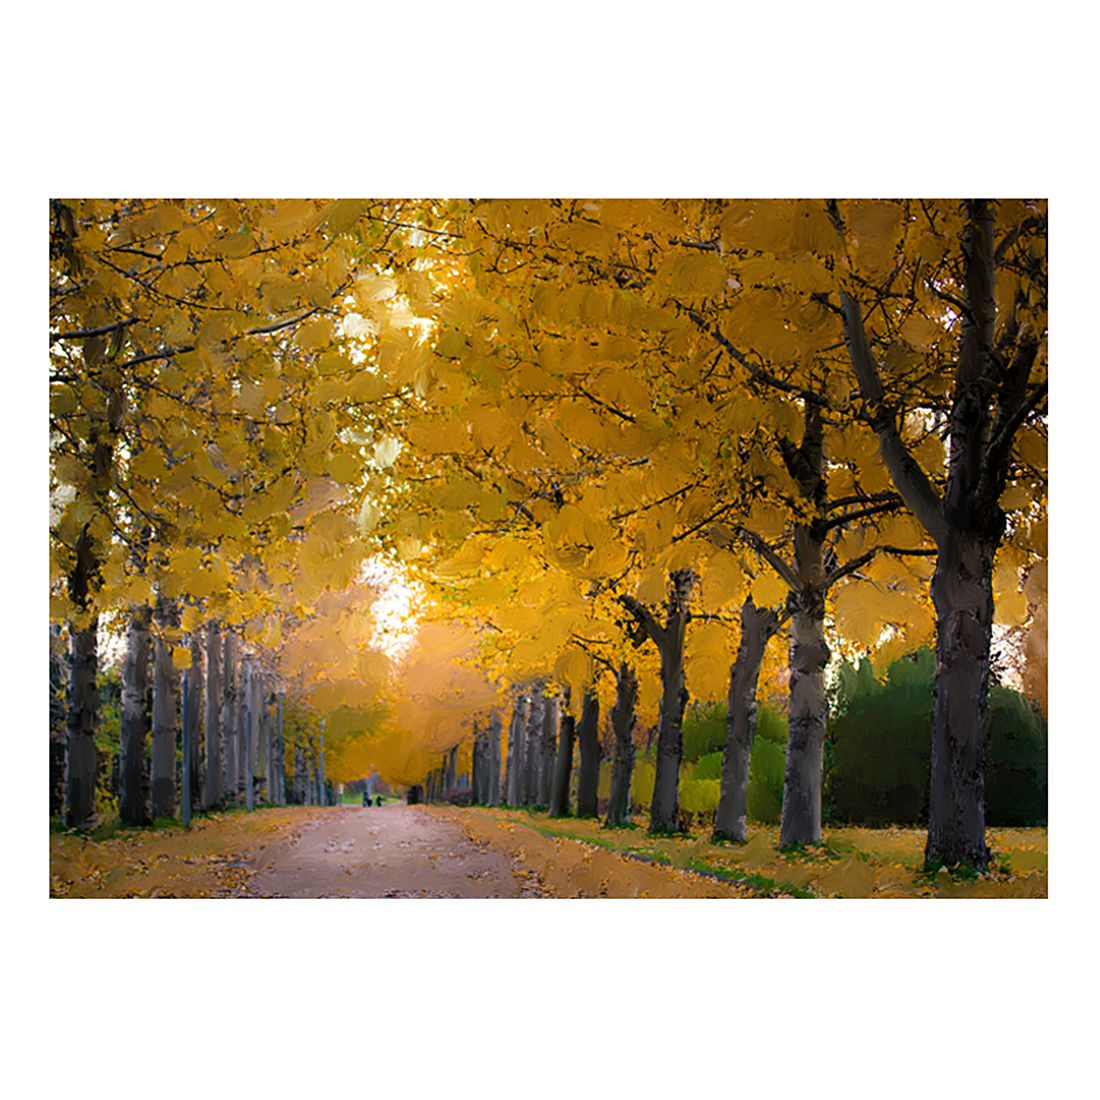 Ölgemälde Autumn Light – Größe 70 x 100 cm, yourPainting online bestellen